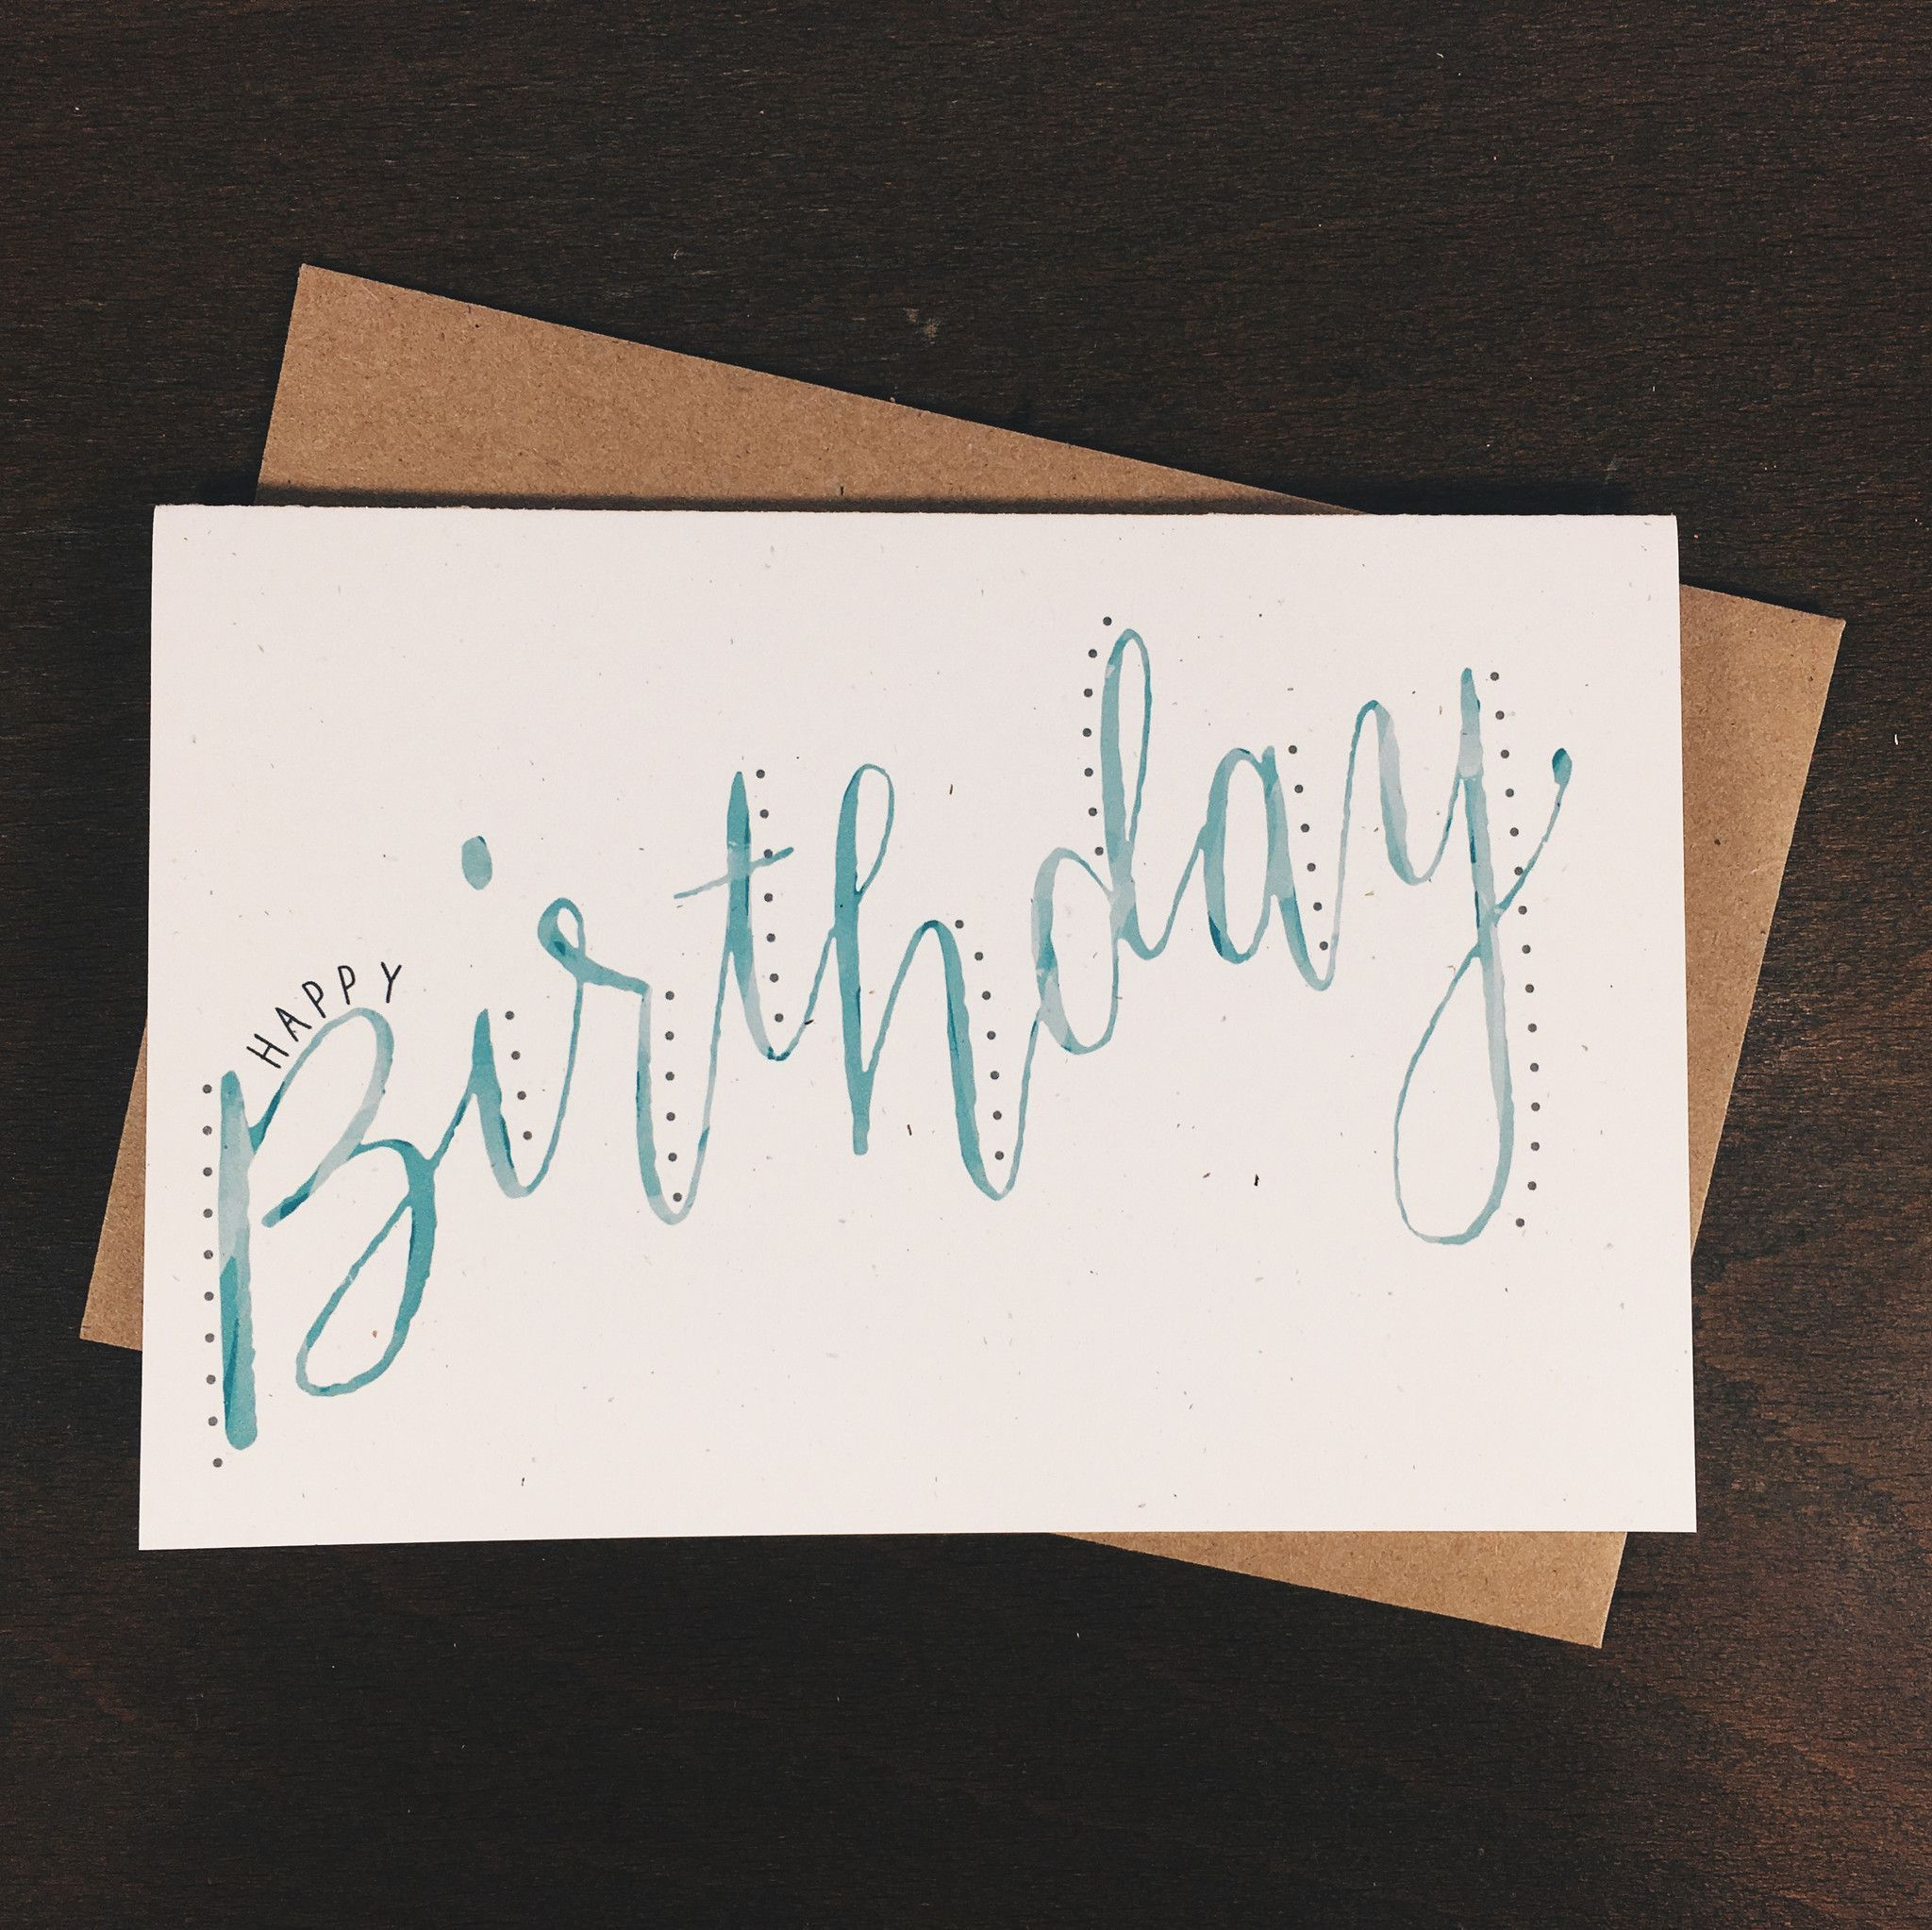 A Simple Hand Lettered Birthday Card Digital Reproduction Of Illustration Specifications Material Speckletone White Cover Dimensions 4 X